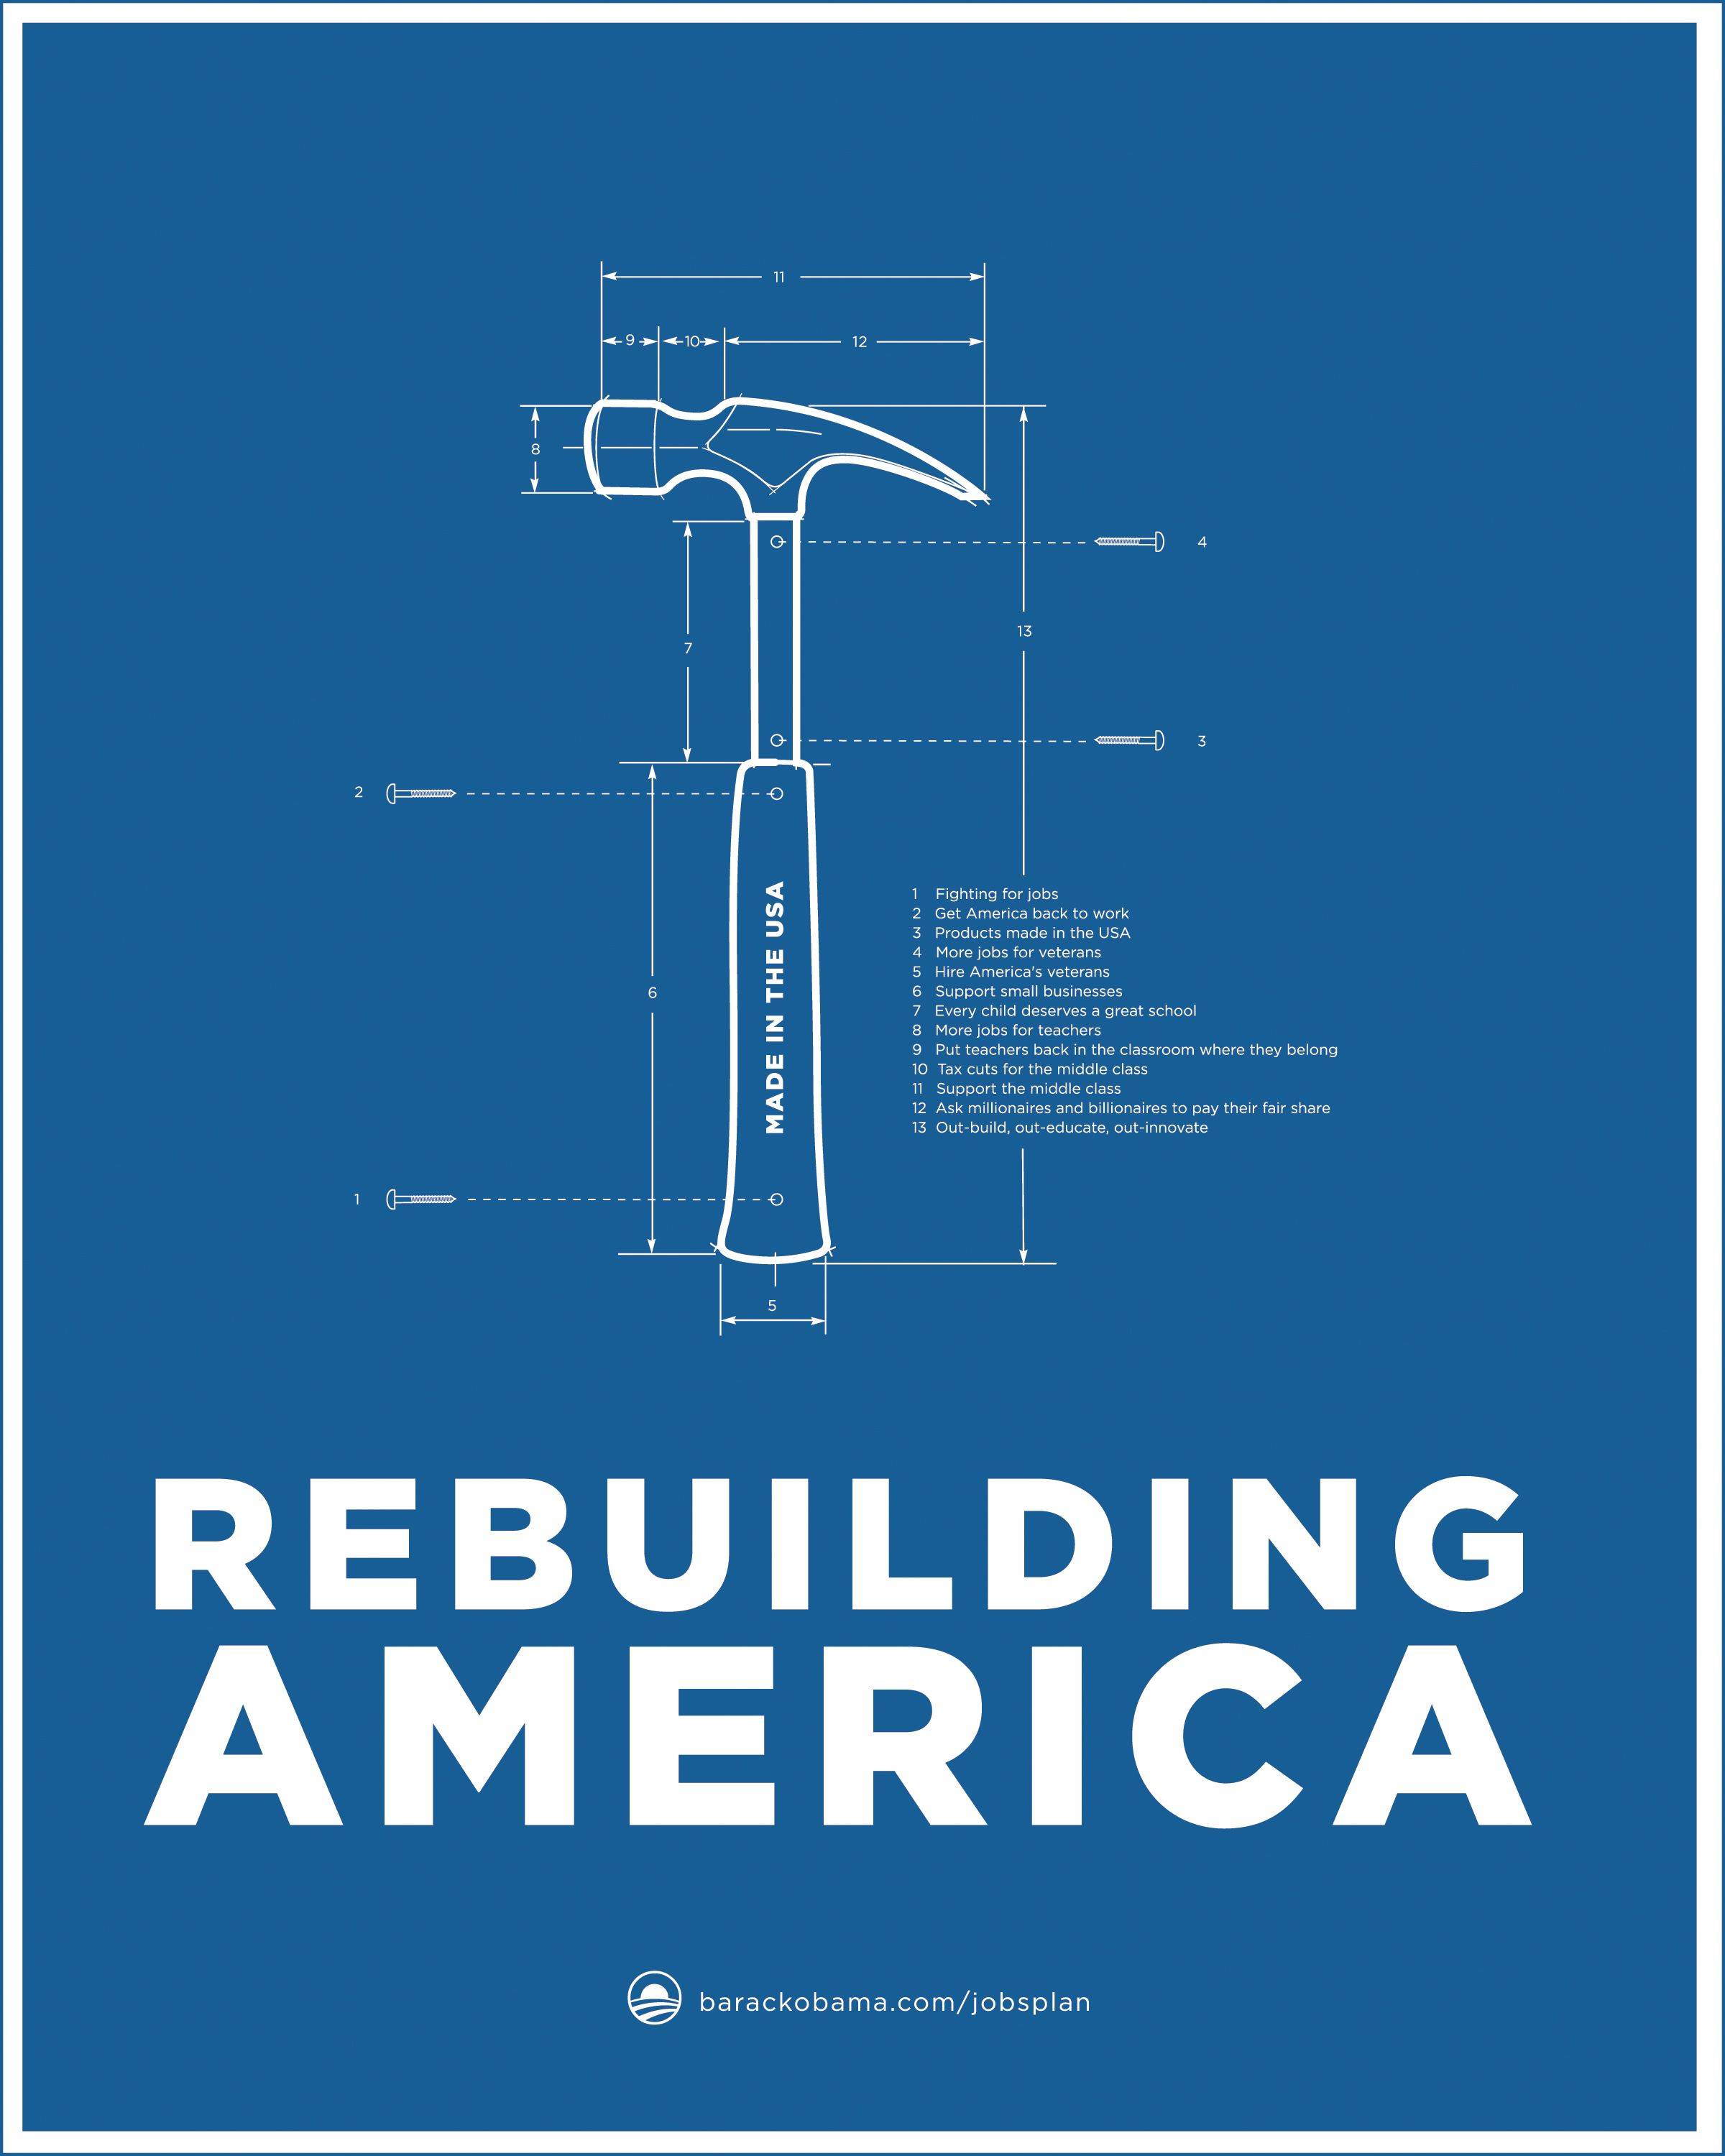 Obama jobs act blueprint poster series hammer by aram asarian at obama jobs act blueprint poster series hammer by aram asarian at aram designs malvernweather